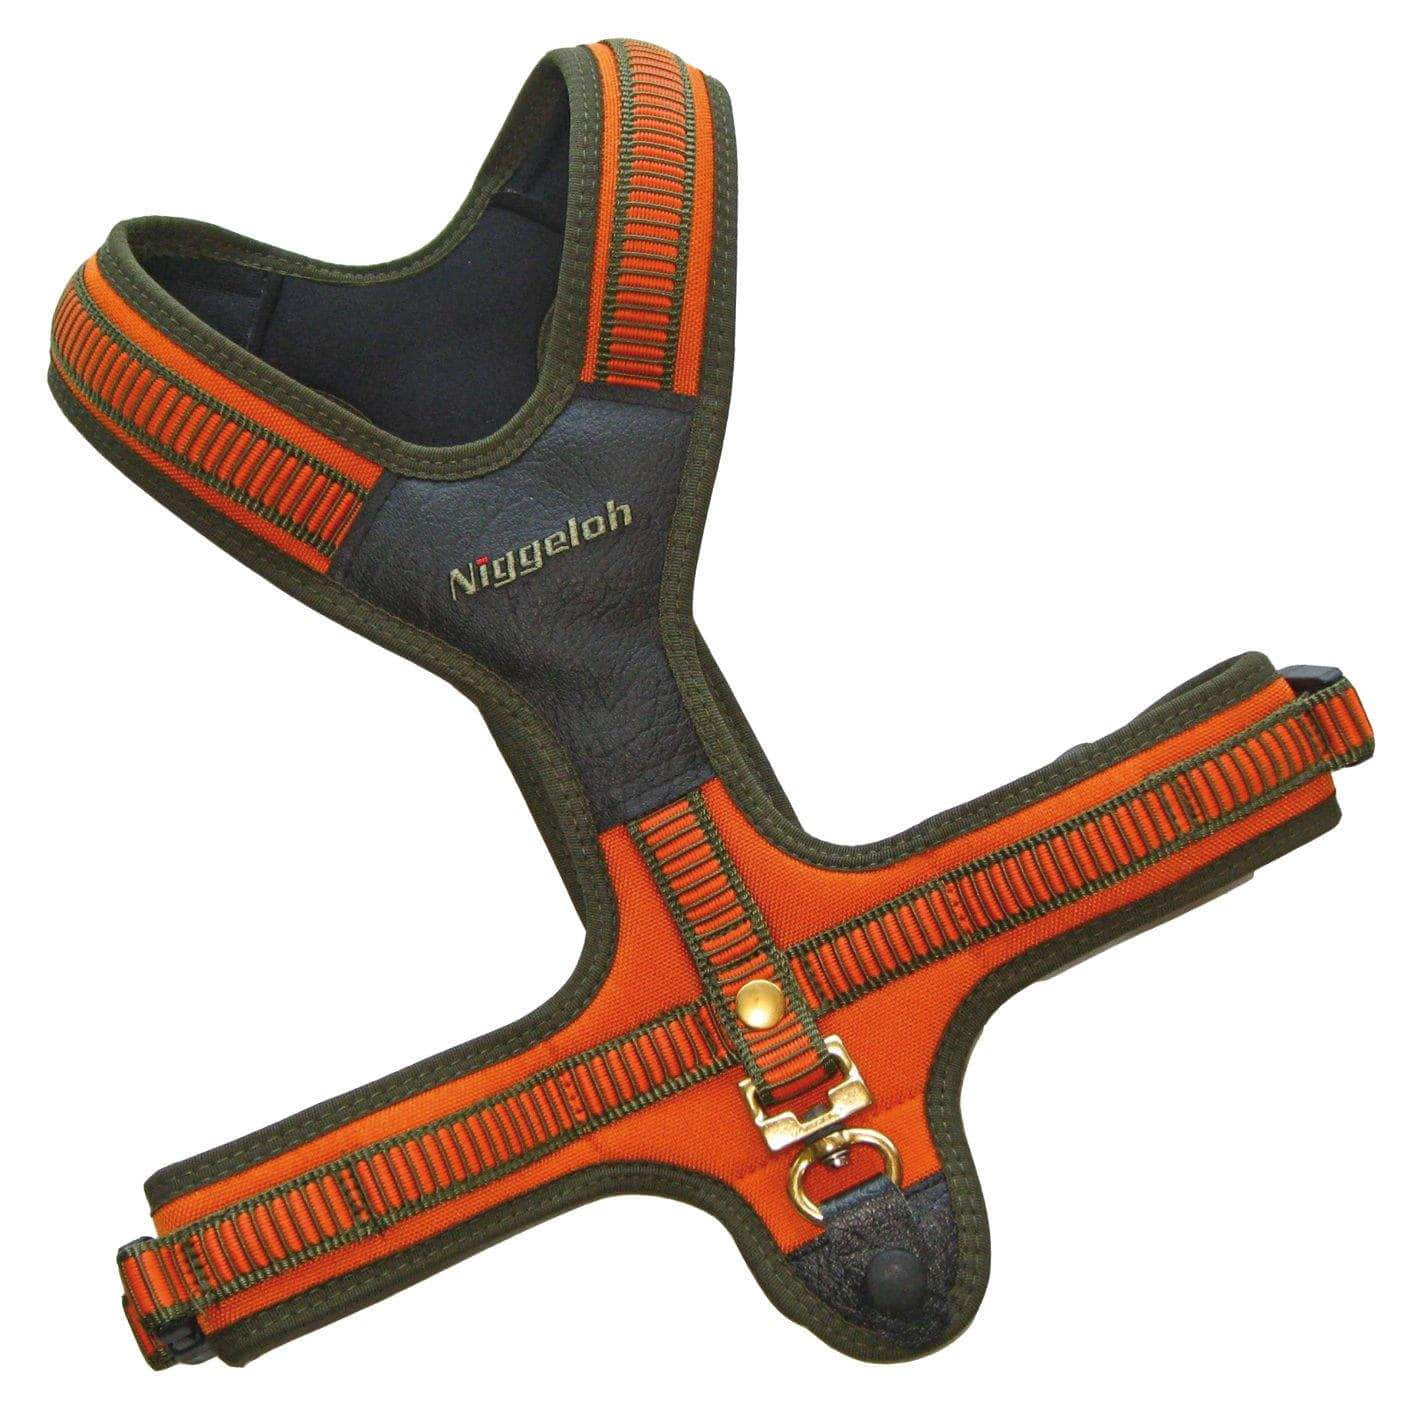 041100013 NIG Harnais Orange M cou 49 cm ventre 54-91 cm - N2204